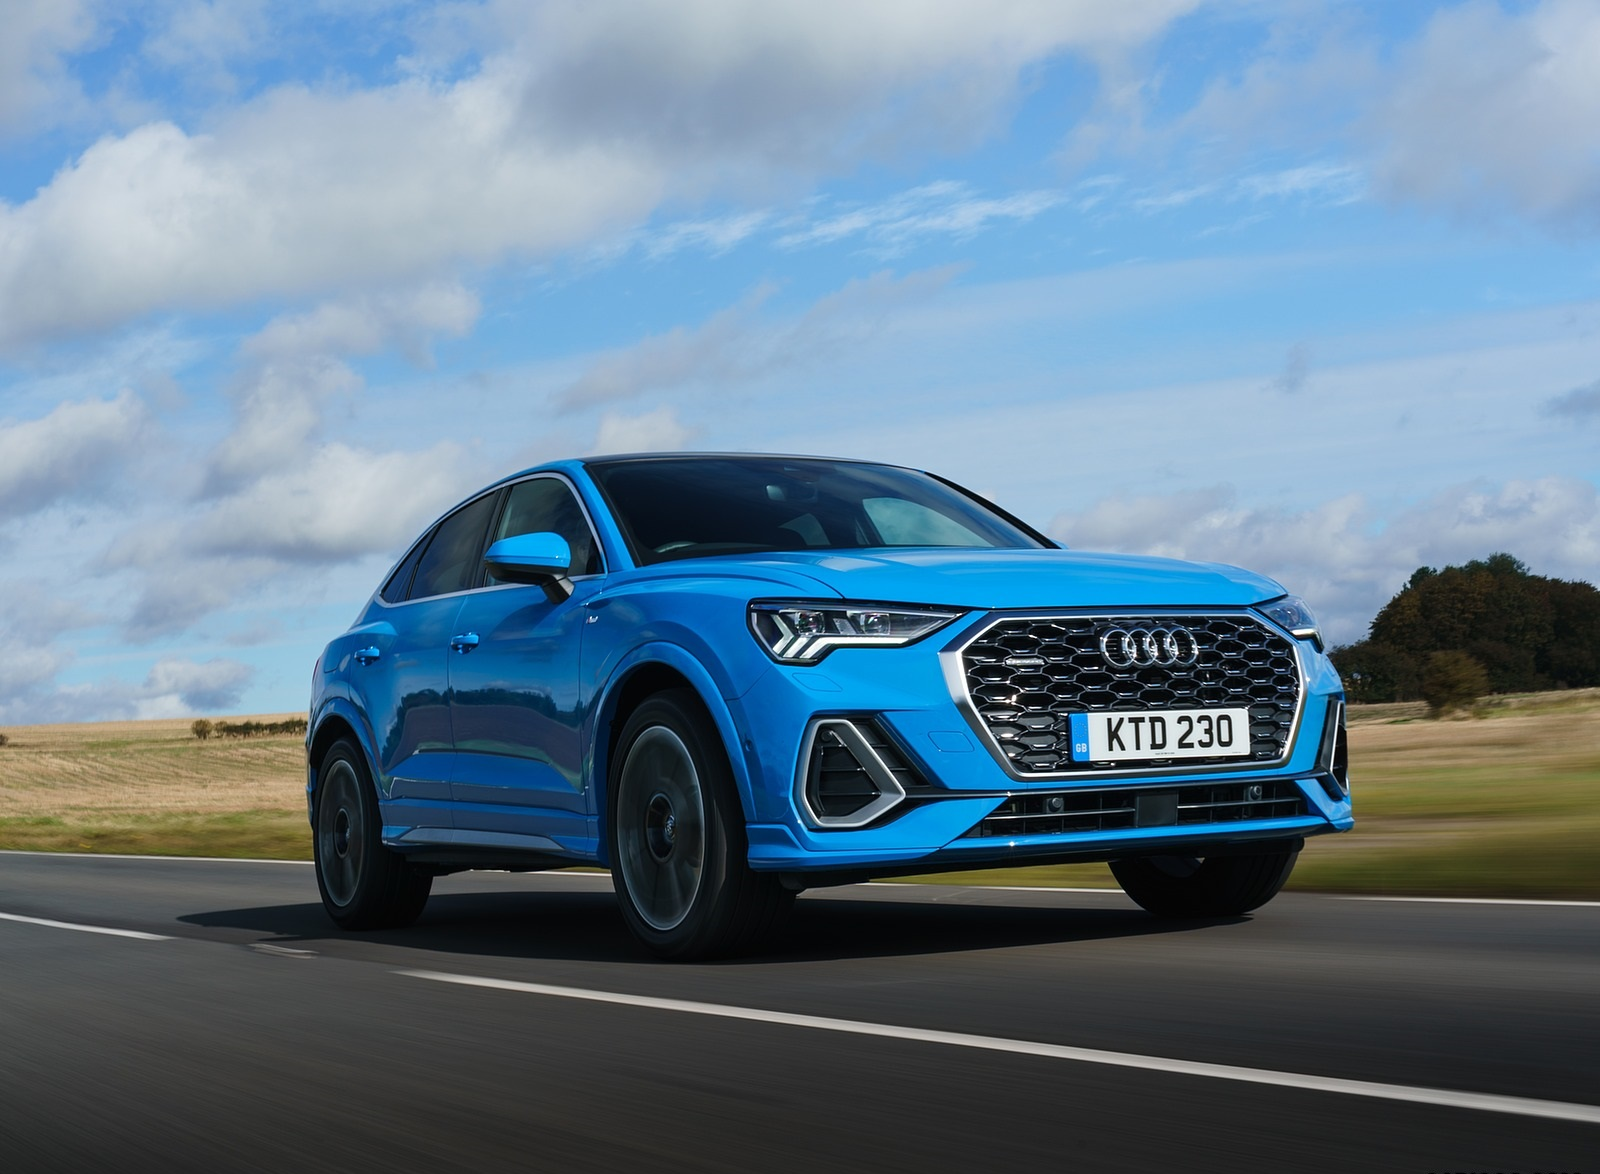 2020 Audi Q3 Sportback 45 TFSI quattro (UK-Spec) Front Three-Quarter Wallpapers (1)